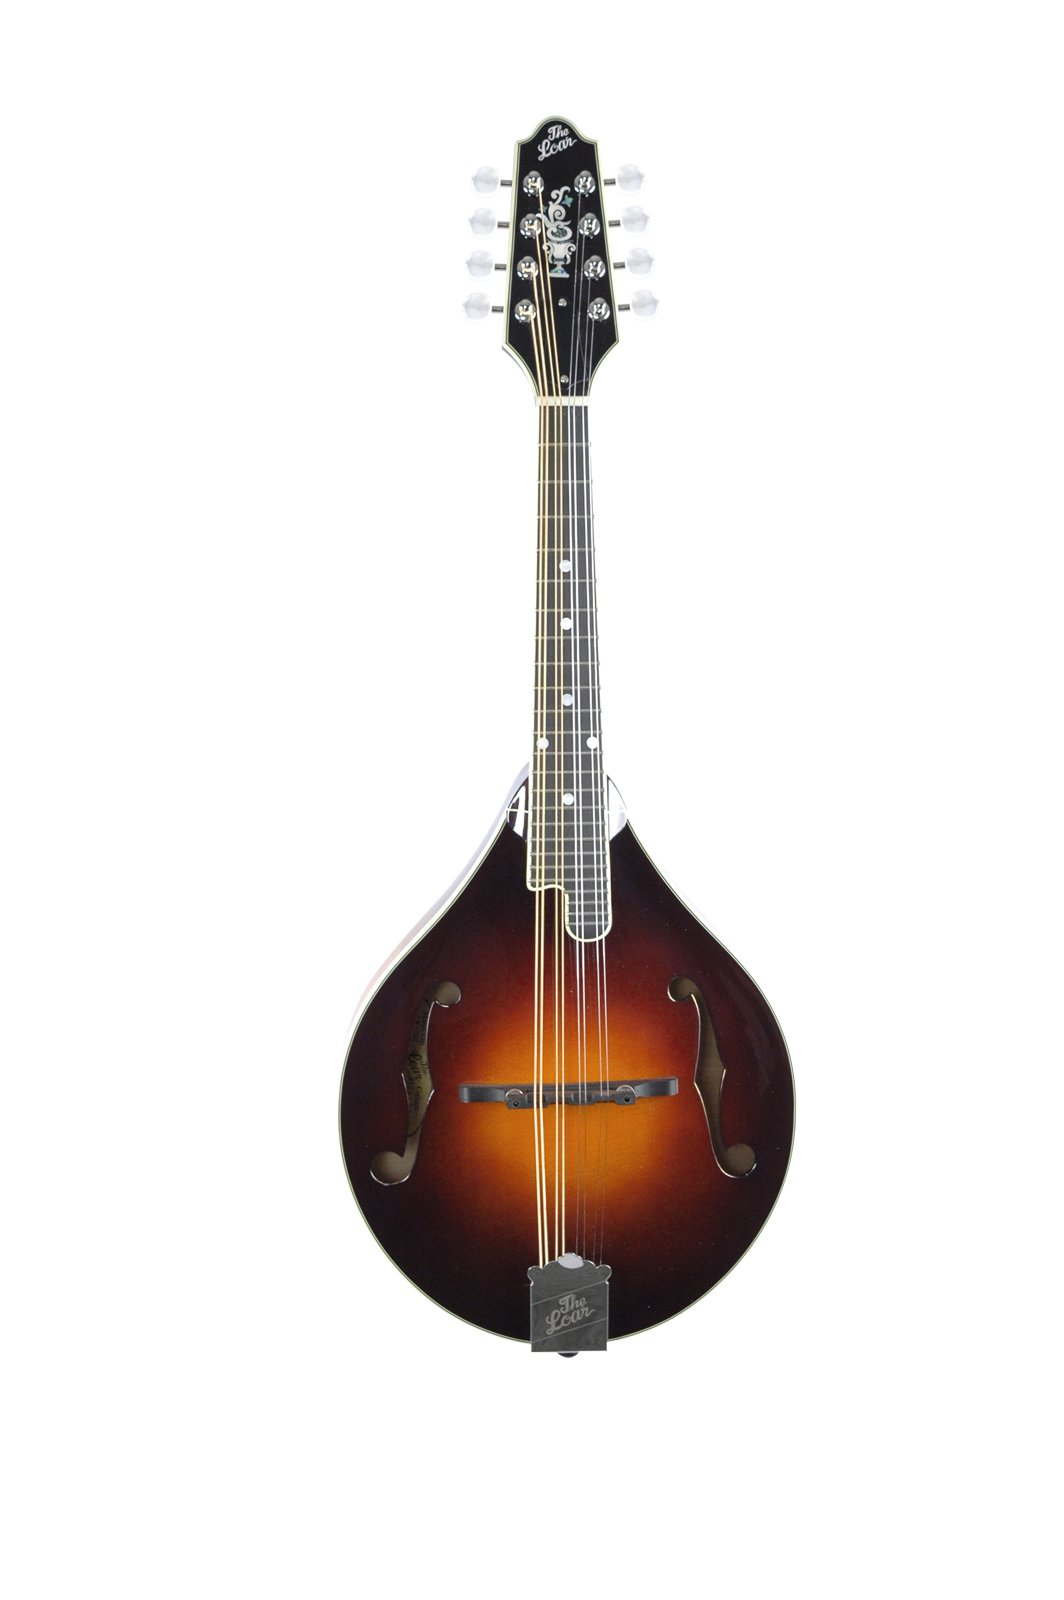 The Loar LM-300-VS Professional A-Style Mandolin